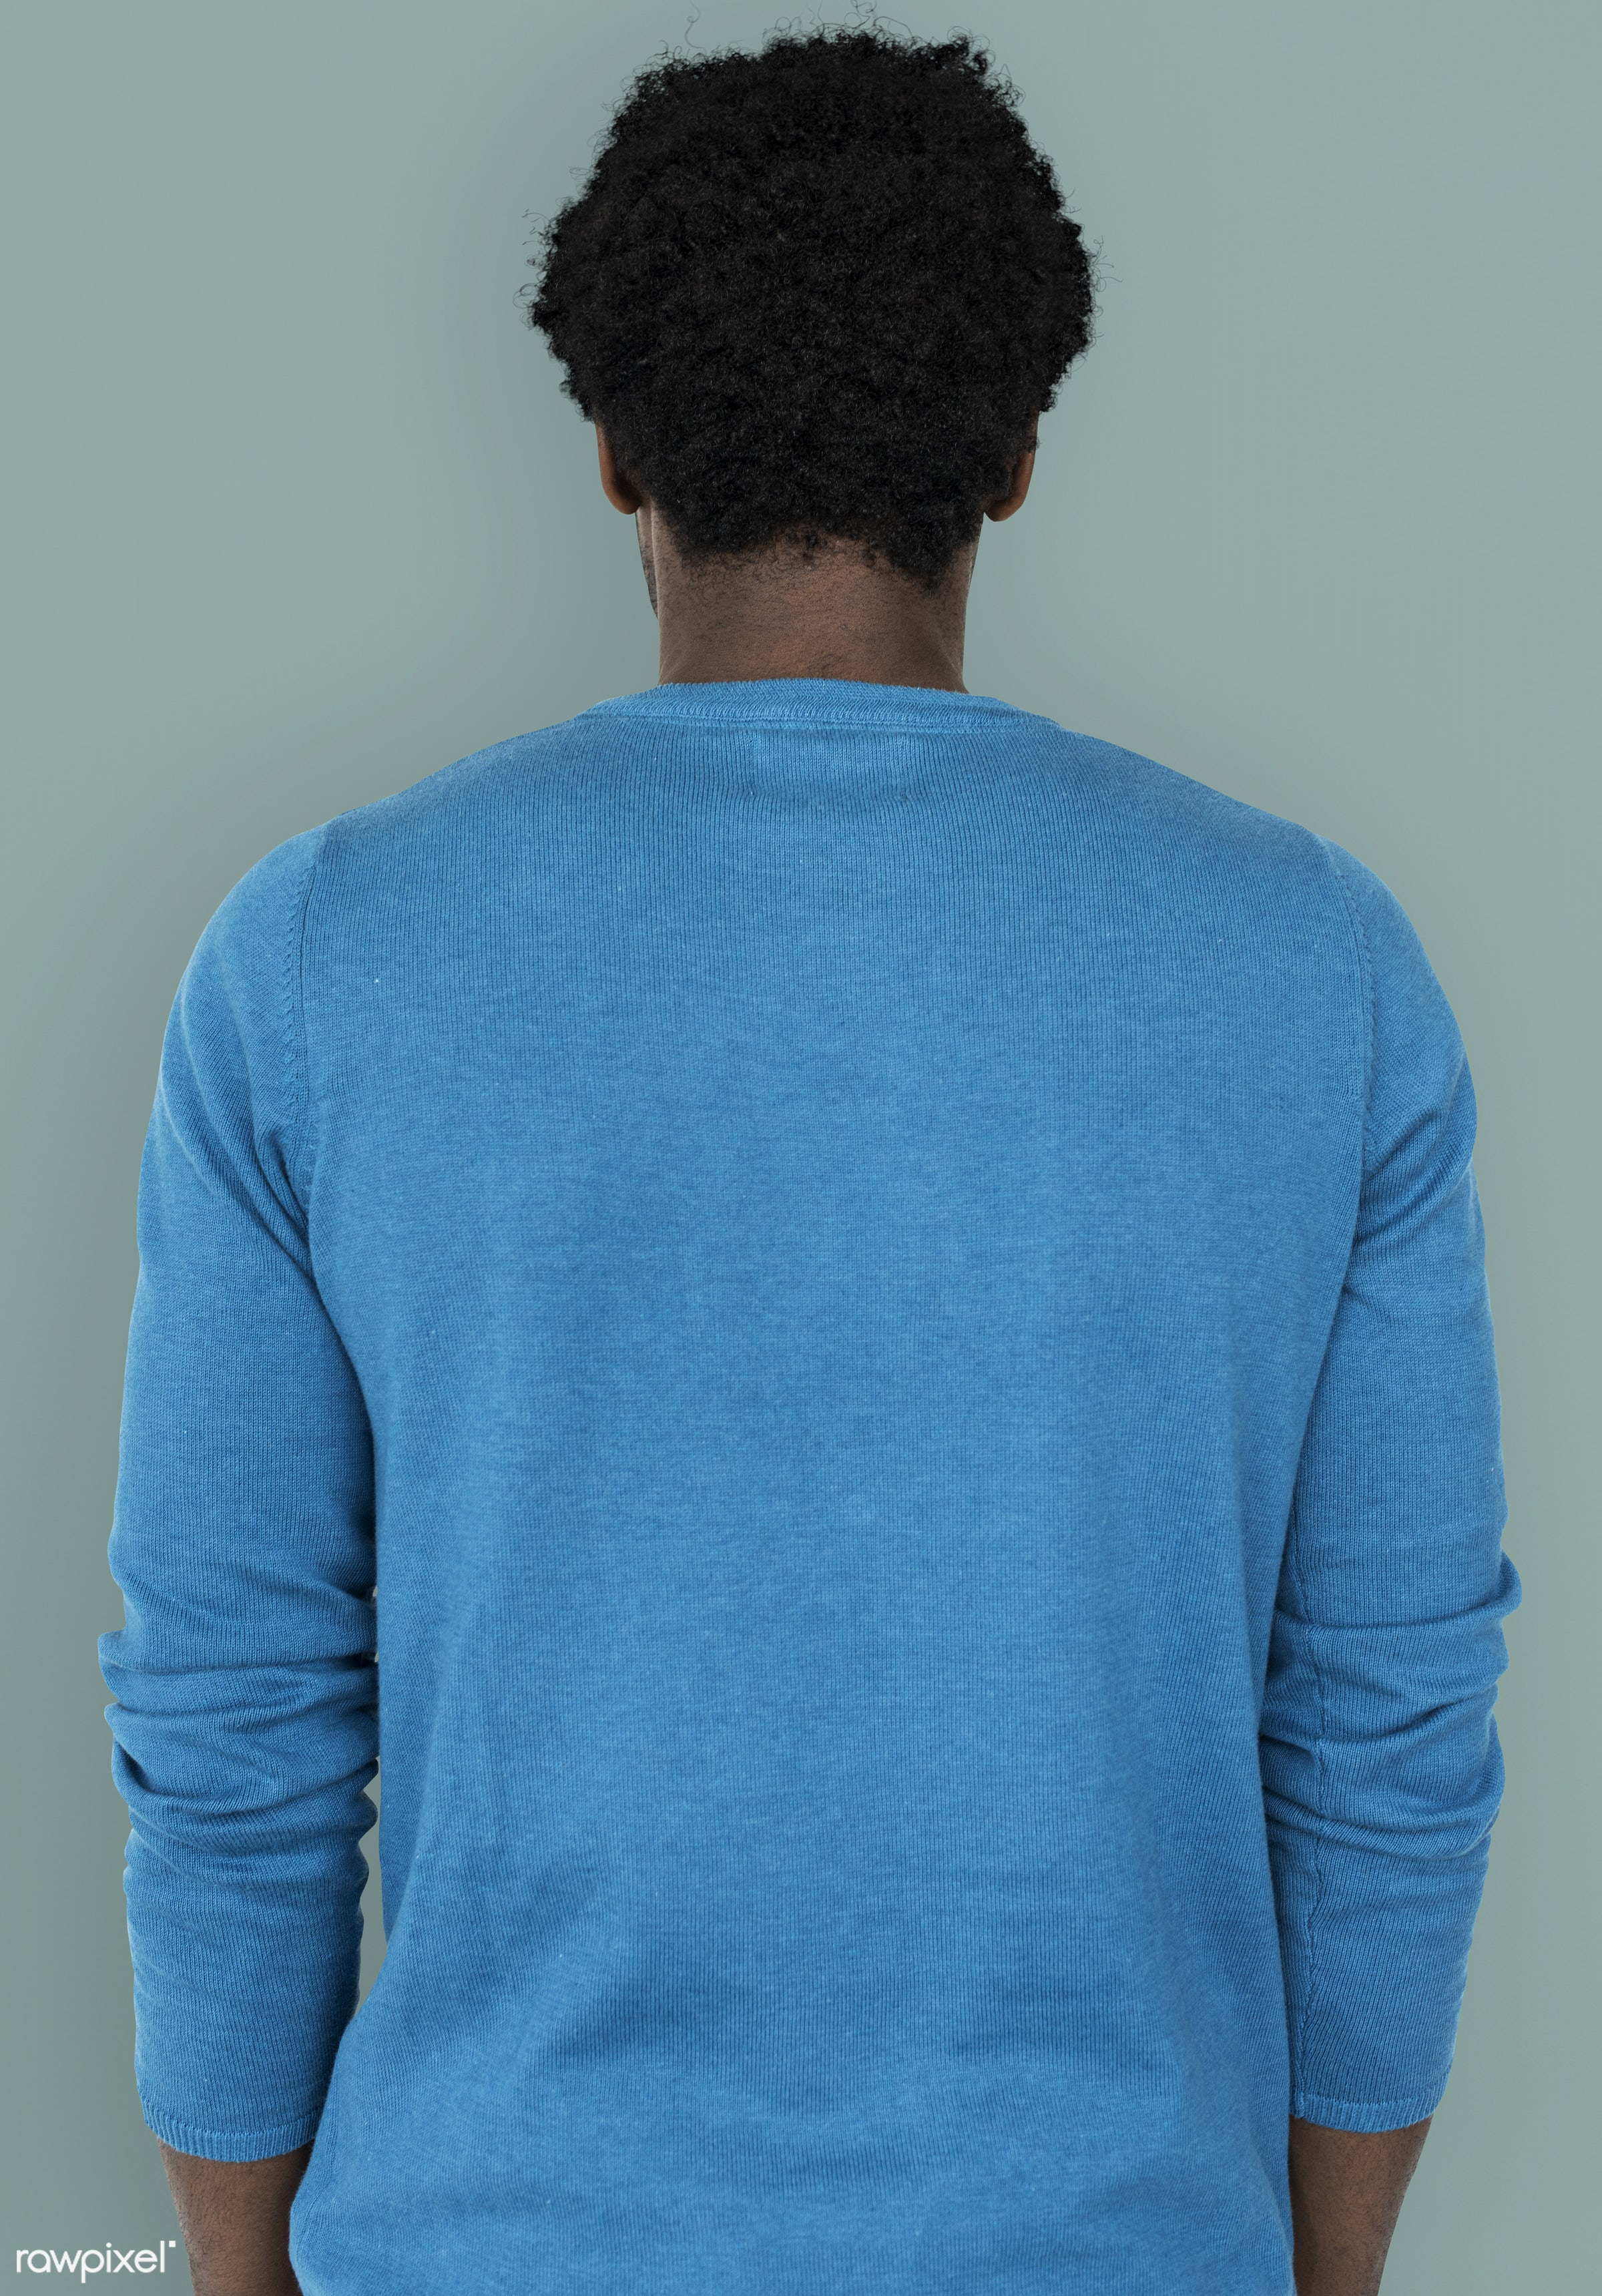 studio, decent, person, emotionless, people, back shot, back view, back facing, man, black, isolated, guy, african descent,...